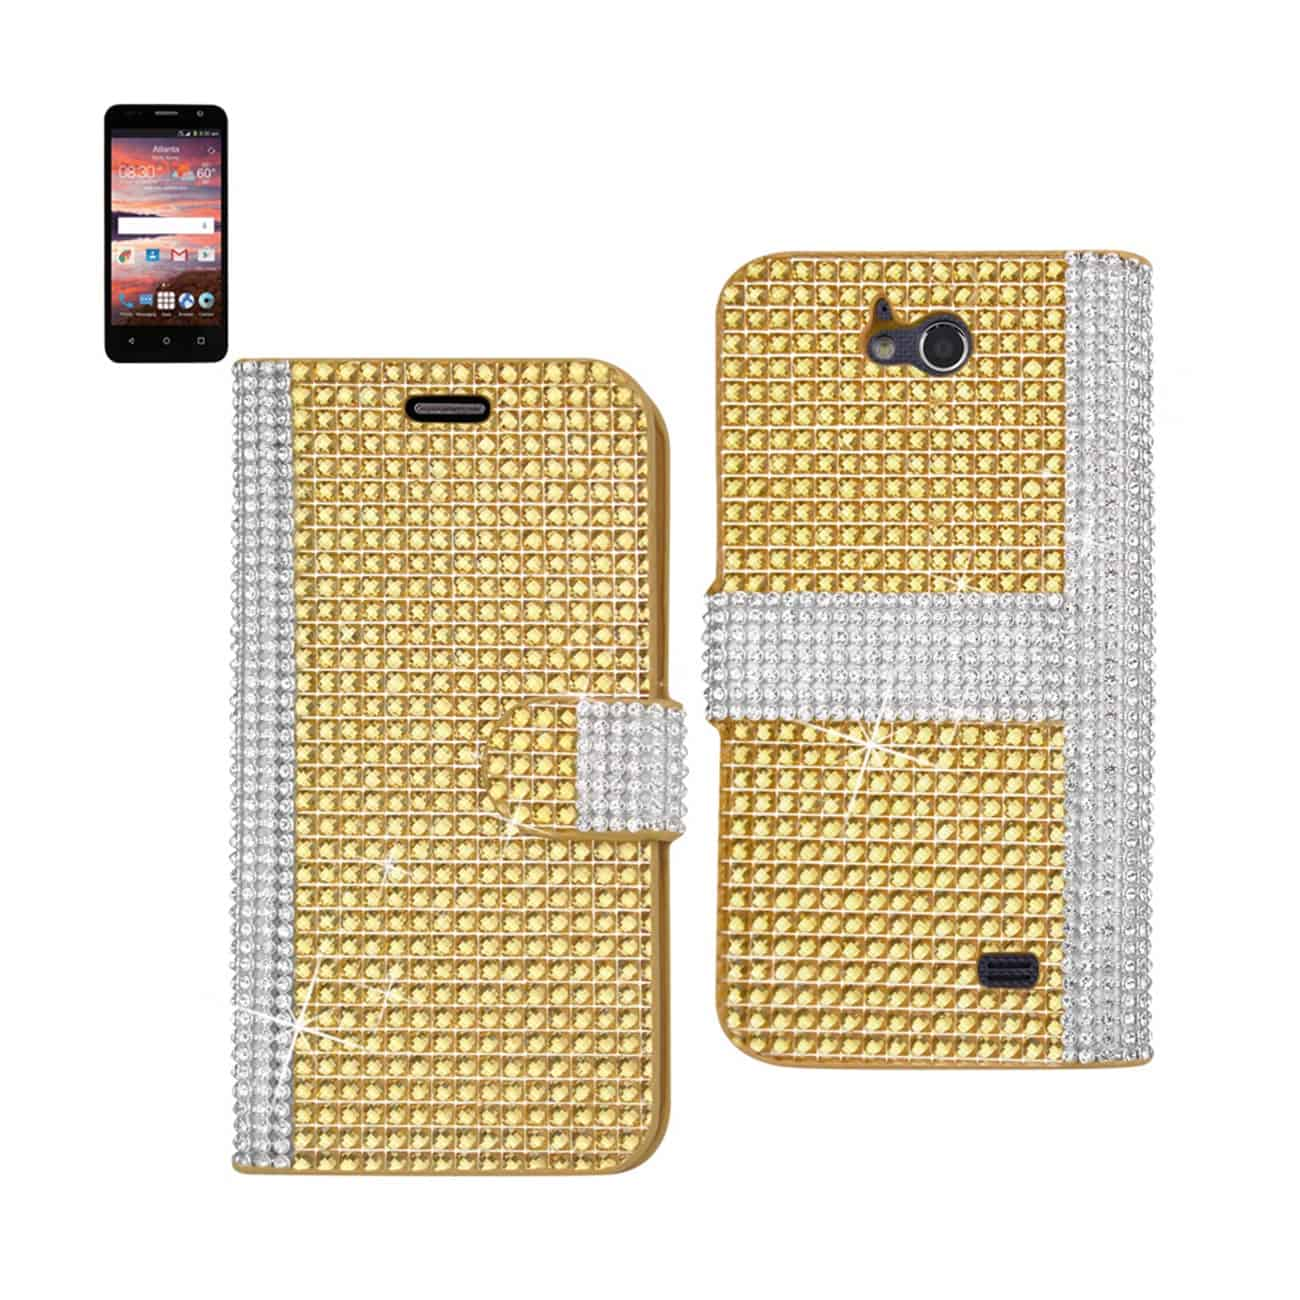 ZTE OVERTURE 2 JEWELRY DIAMOND RHINESTONE WALLET CASE IN GOLD